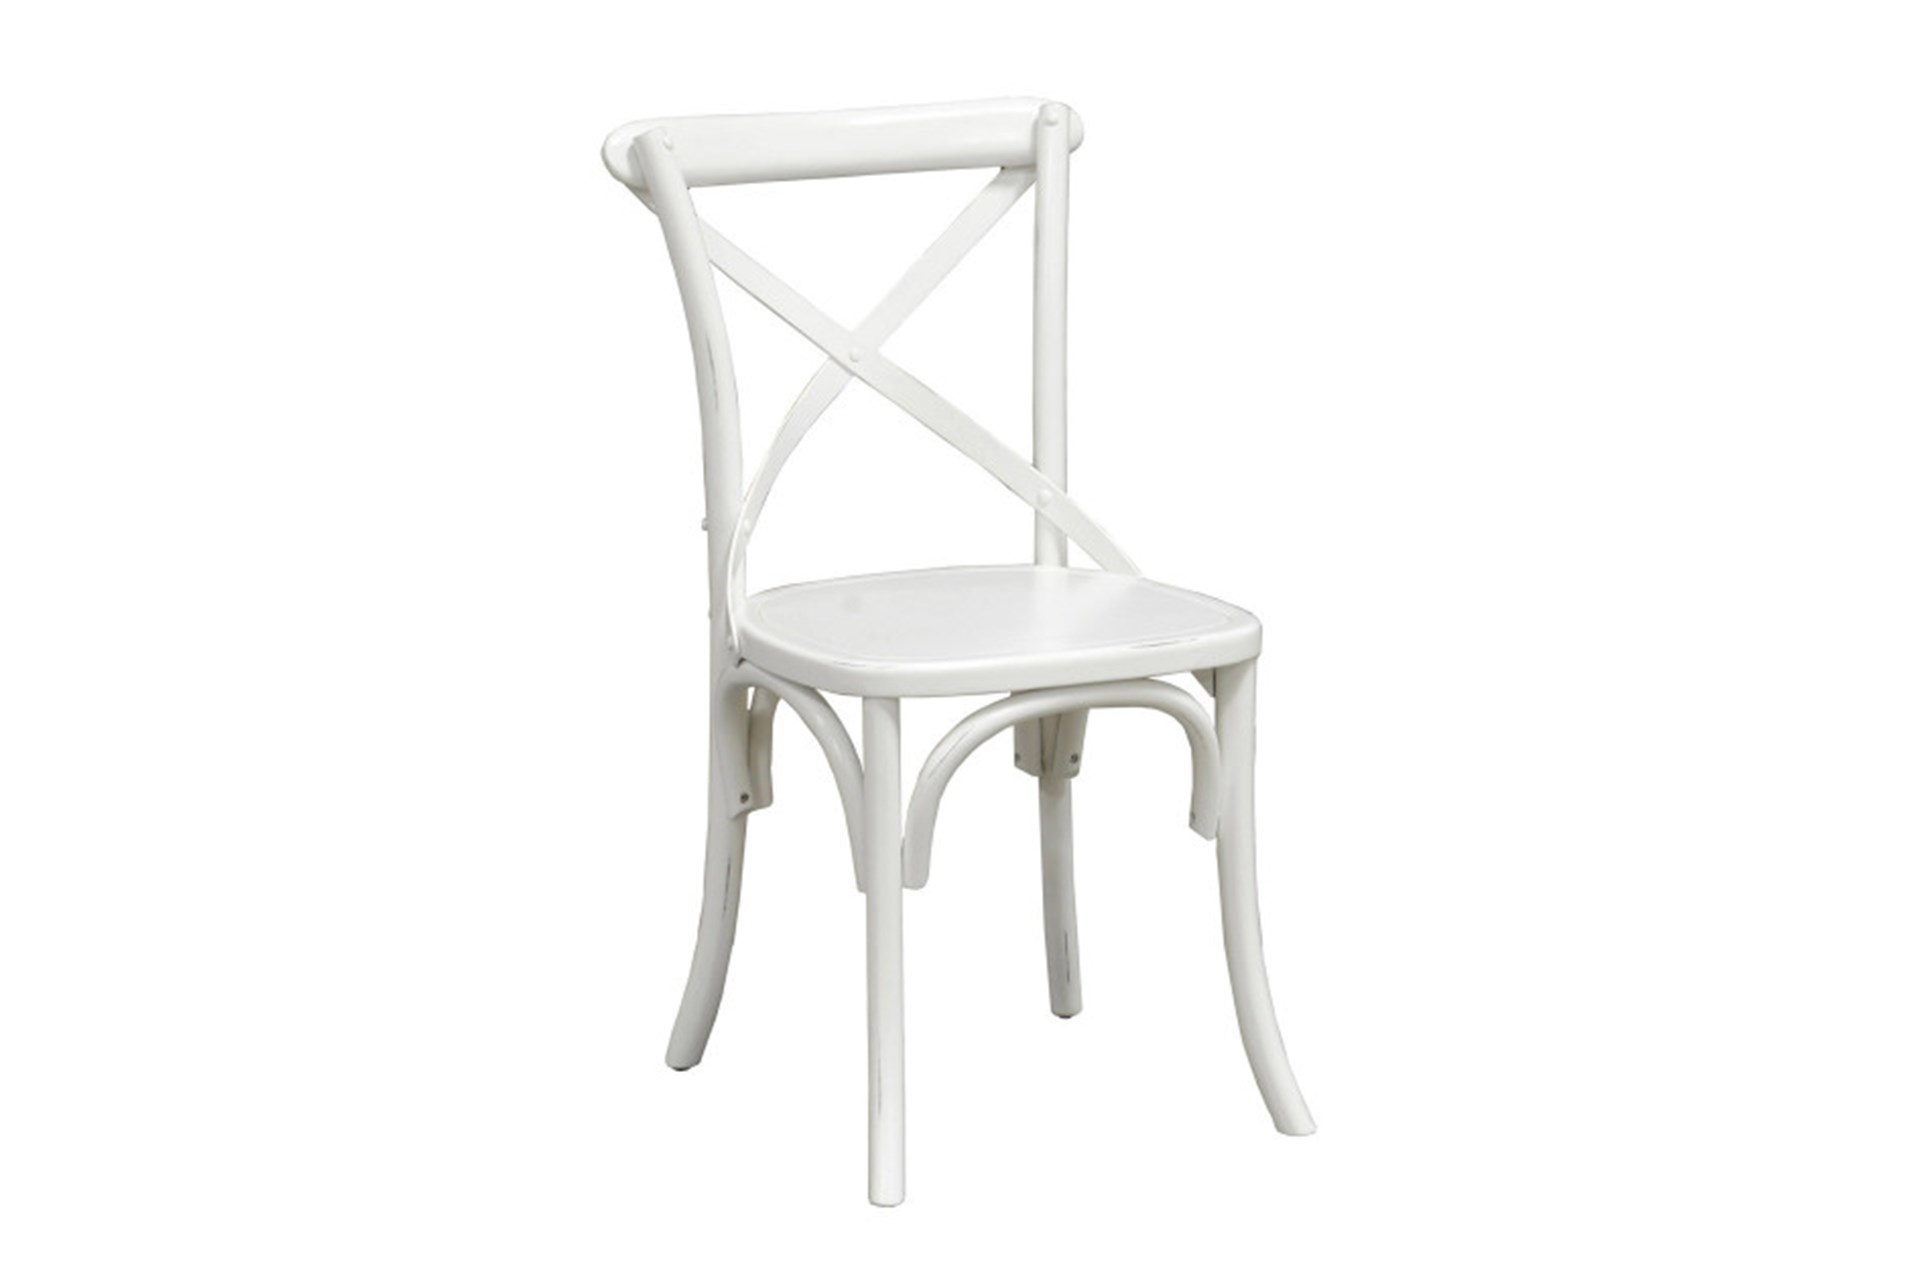 Pine Wood White Dining Chair Qty 1 Has Been Successfully Added To Your Cart